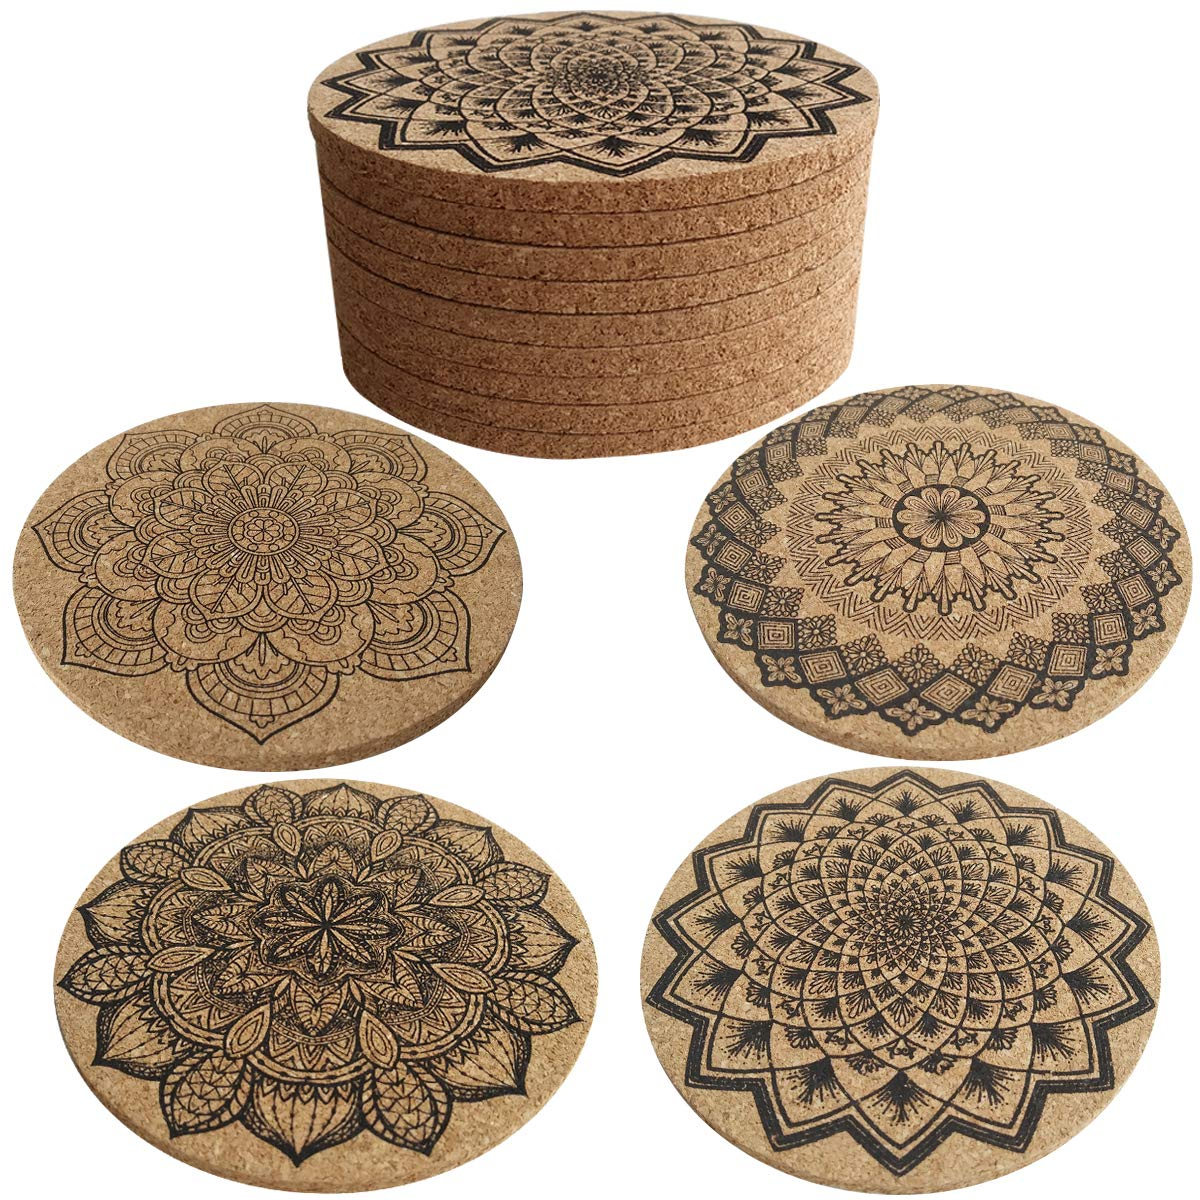 Cork Coasters, Topspeeder 16 pcs Drink Coasters Mats For Drinks Absorbent with Cork Base, Prevent Furniture from Dirty and Scratched Suitable Cold Drinks, Wine Glasses, Mugs & Cups (Wood)